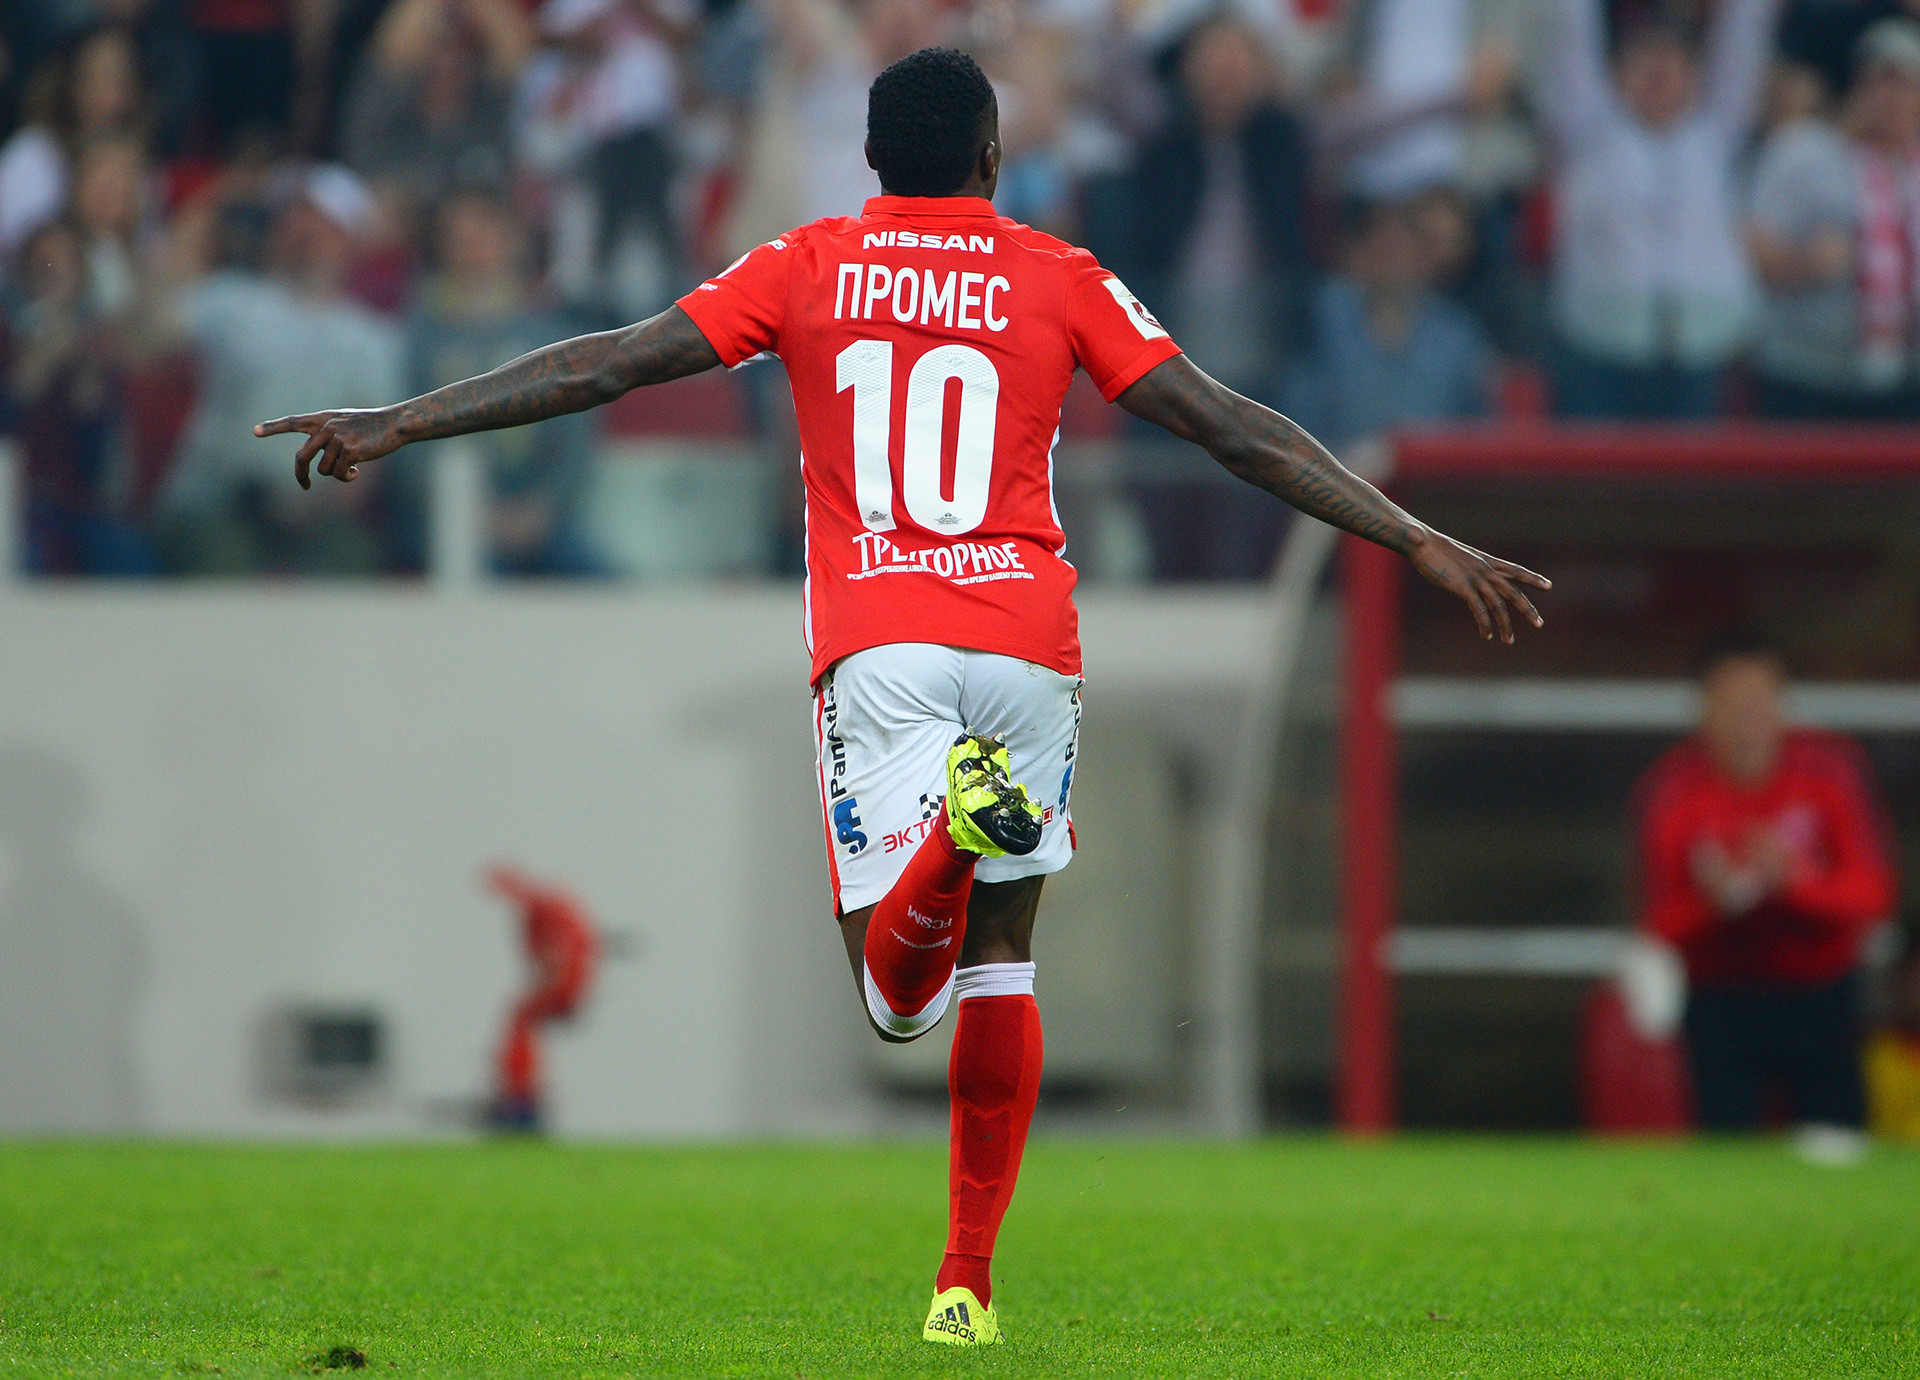 Dutch-born winger Quincy Promes has been a rare standout foreigner in the Russian Premier League, netting 58 times in 115 appearances for Spartak Moscow